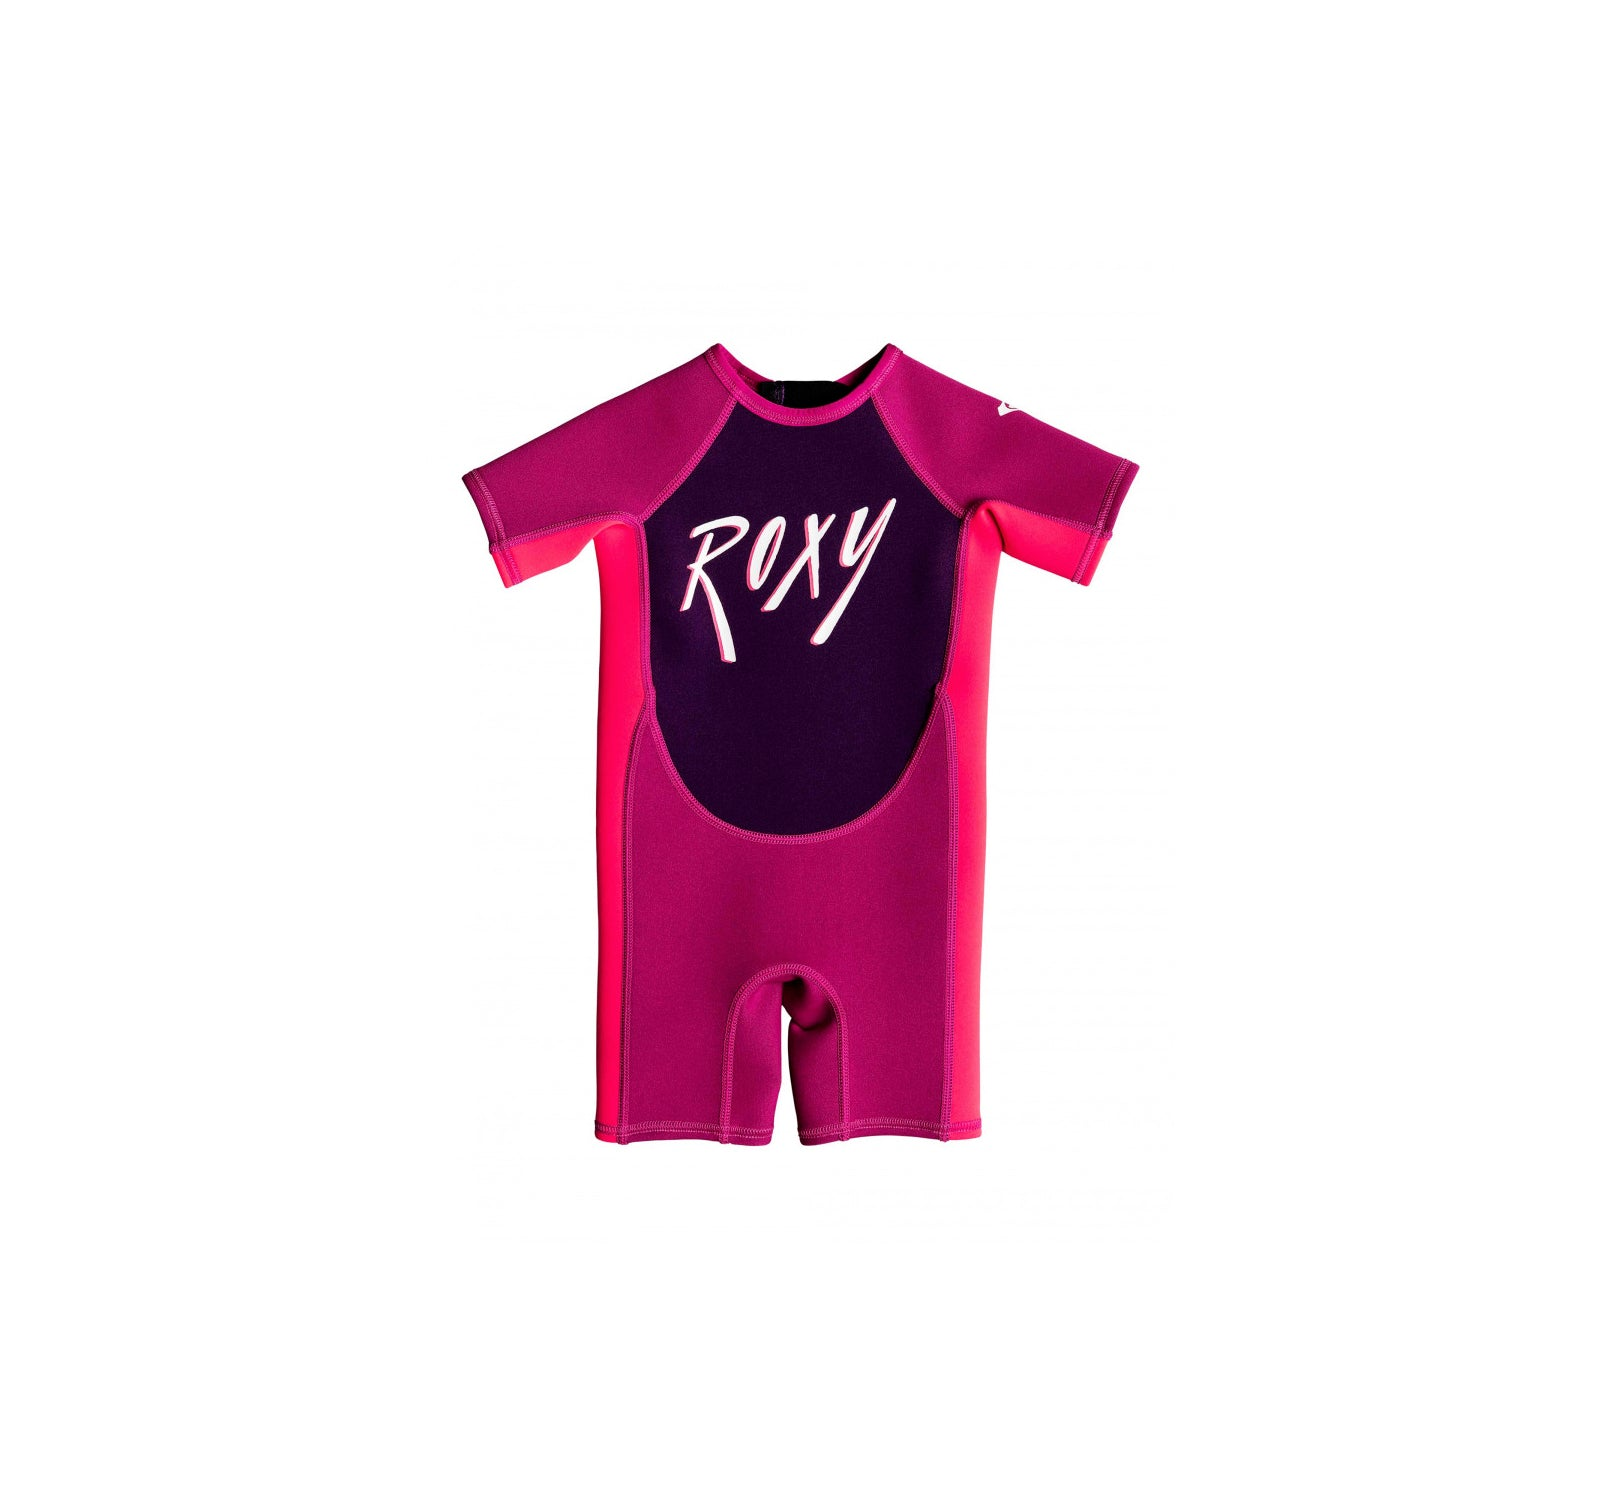 Roxy Syncro 1.5mm Toddler Girl s Springsuit - Surf Station Store 9a99384b4